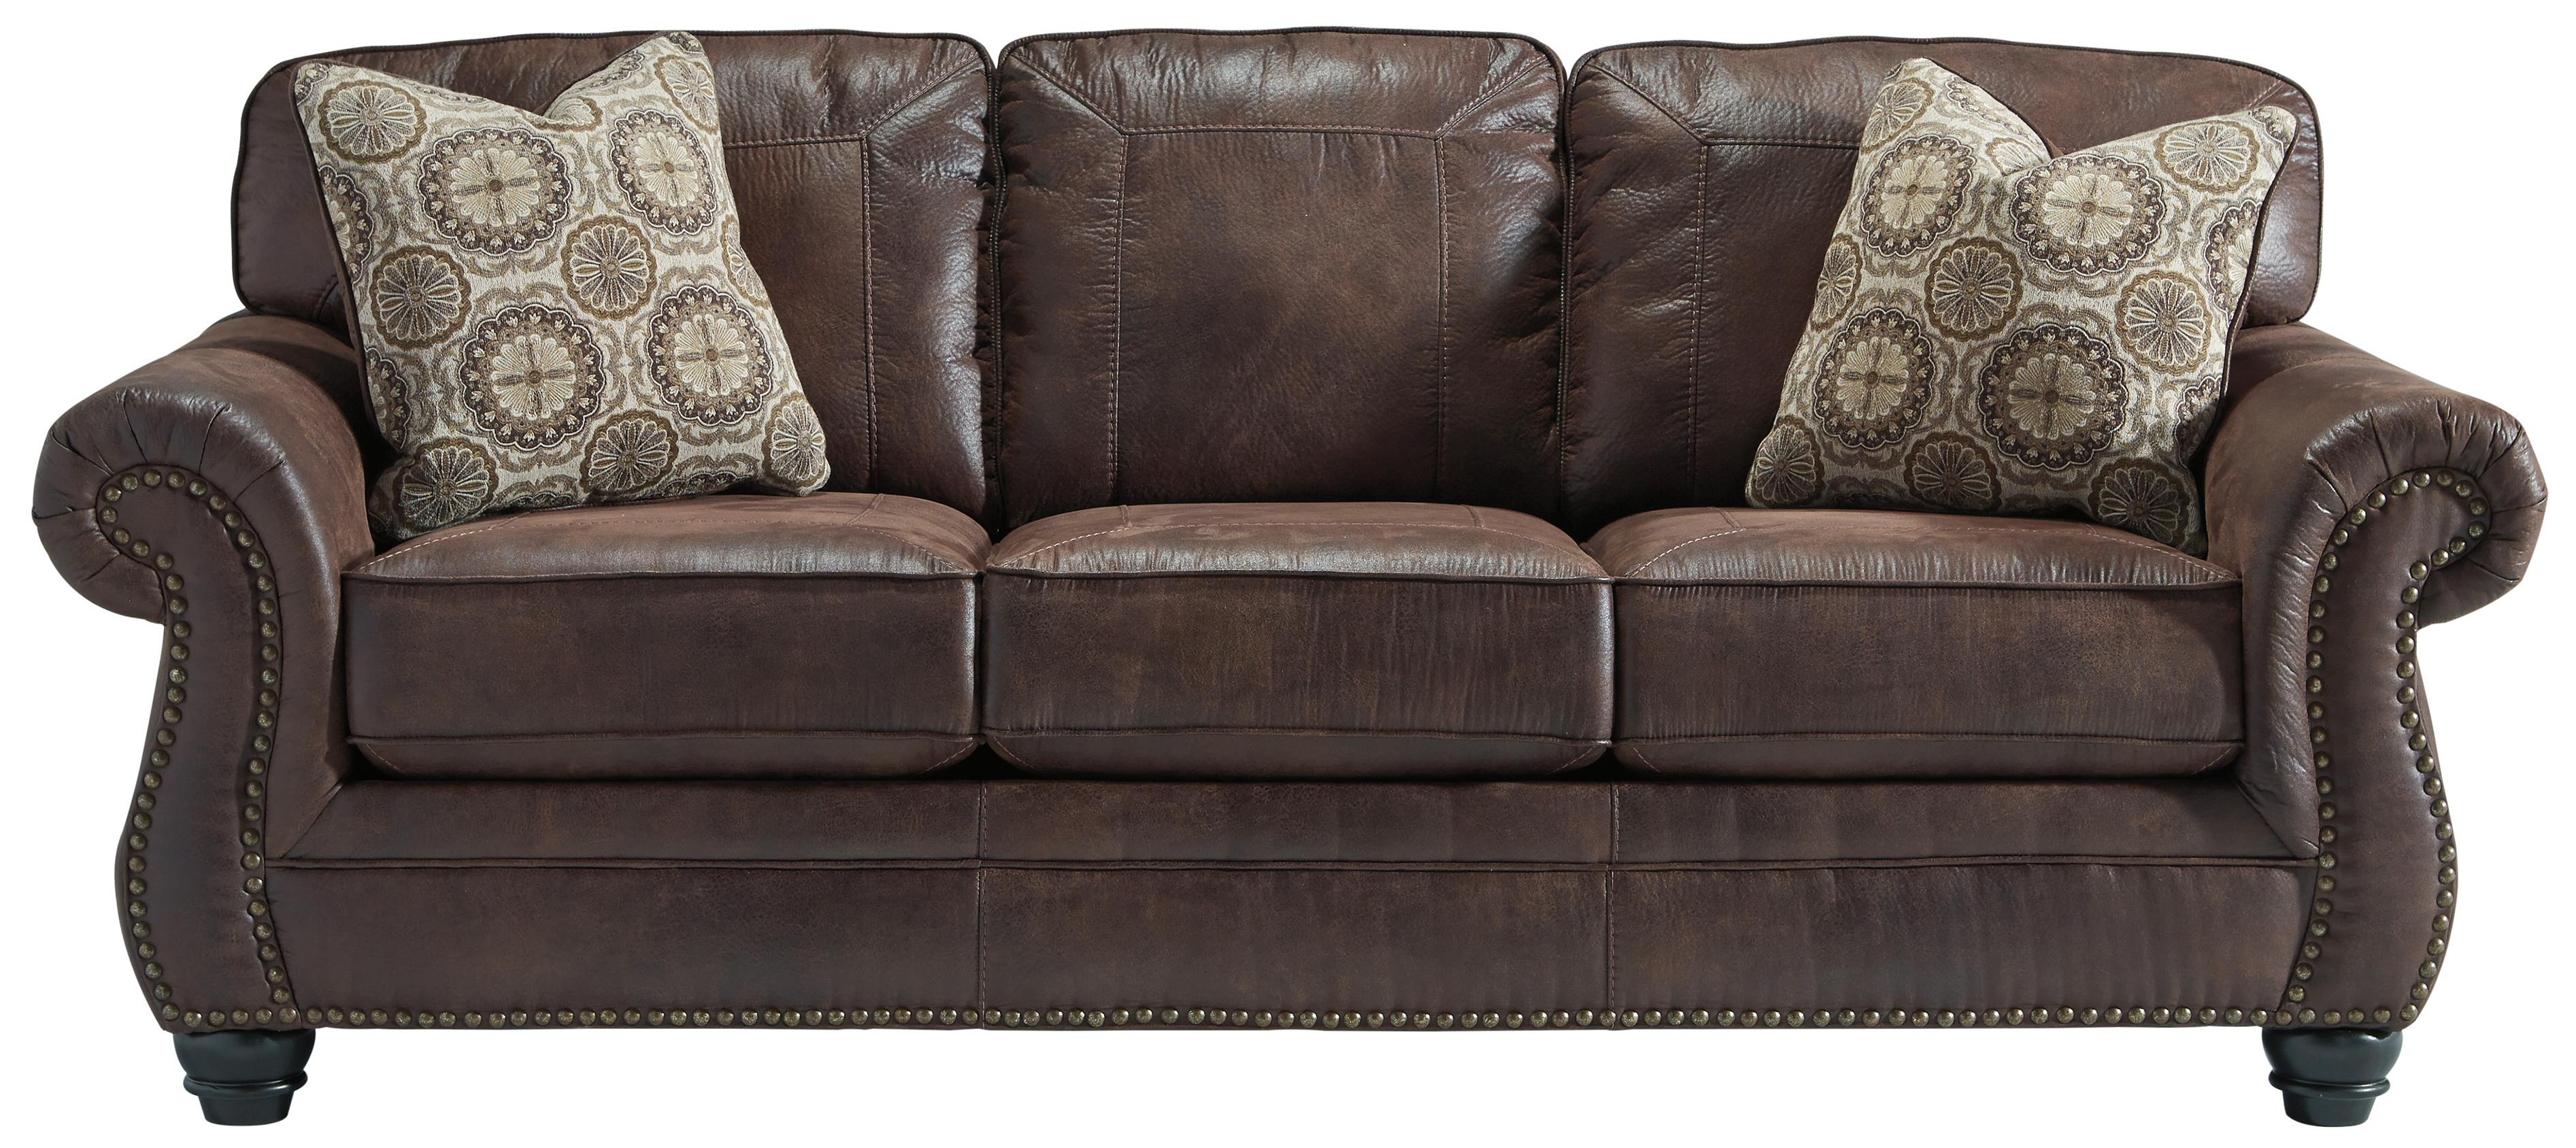 Breville Queen Sofa Sleeper by Benchcraft at Catalog Outlet